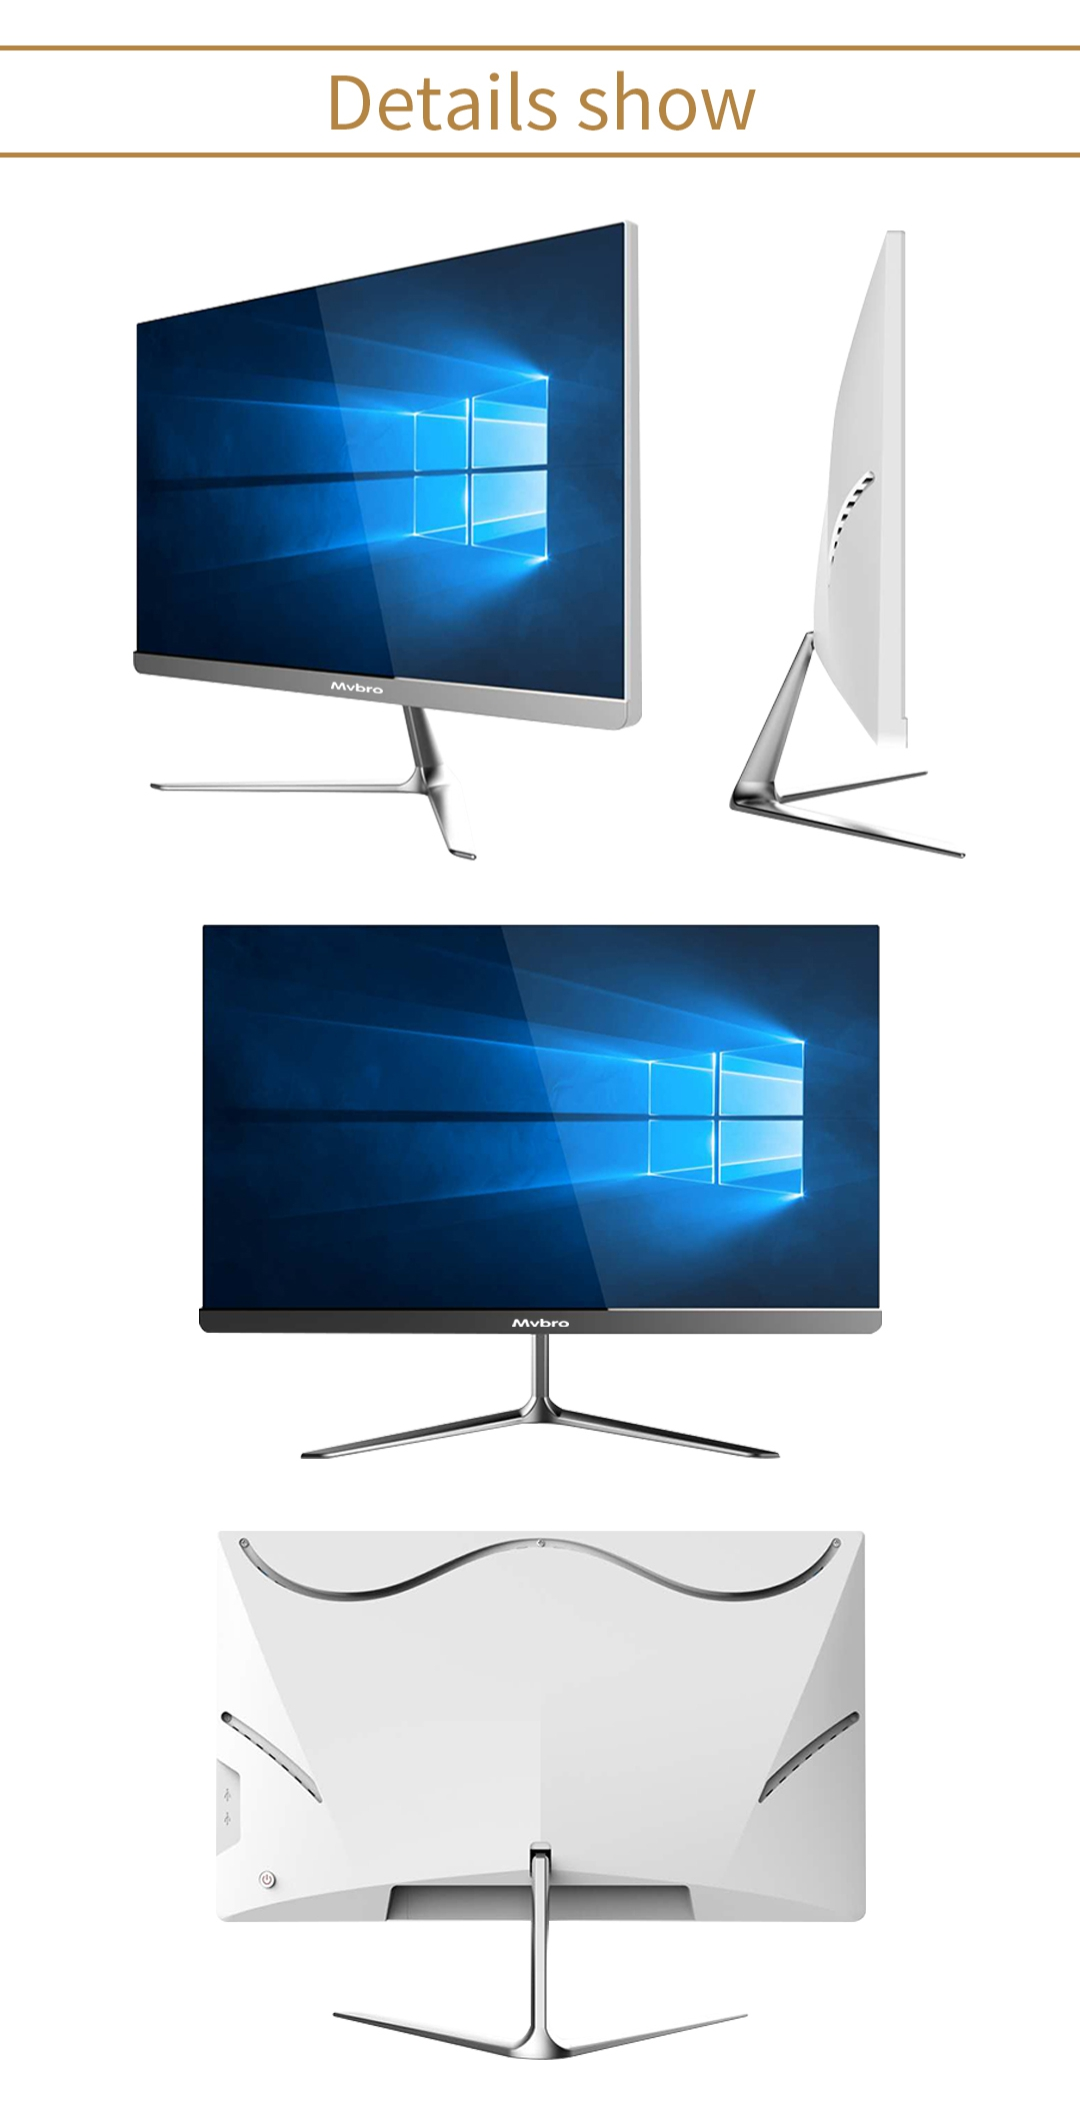 21.5 inch J1900 touch screen All In One pc desktop computer